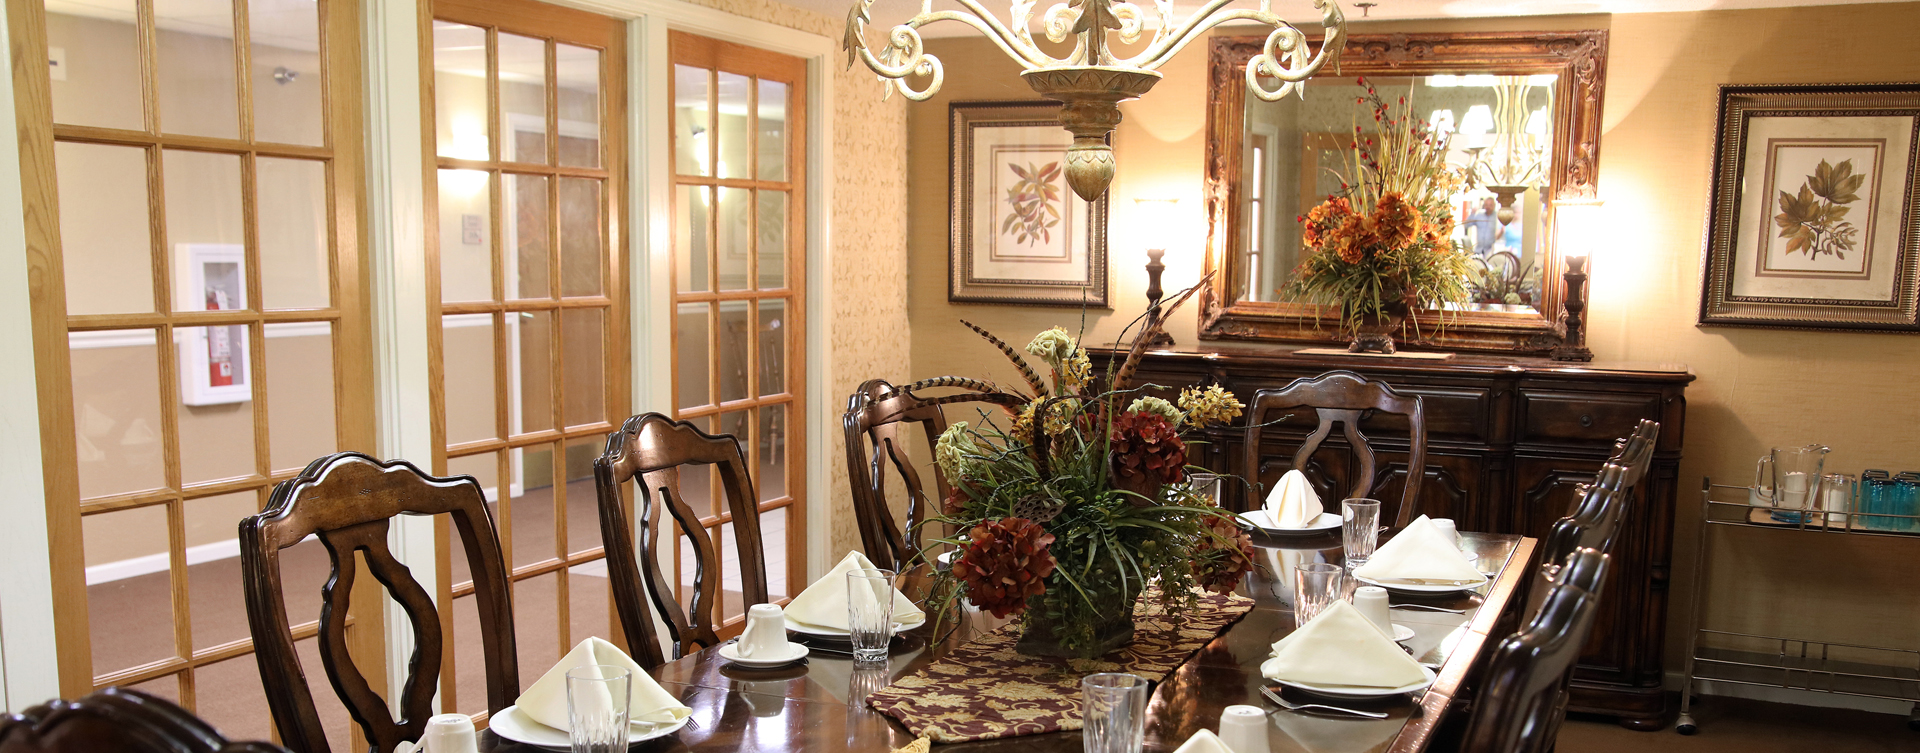 Celebrate special occasions in the private dining room at Bickford of Rockford